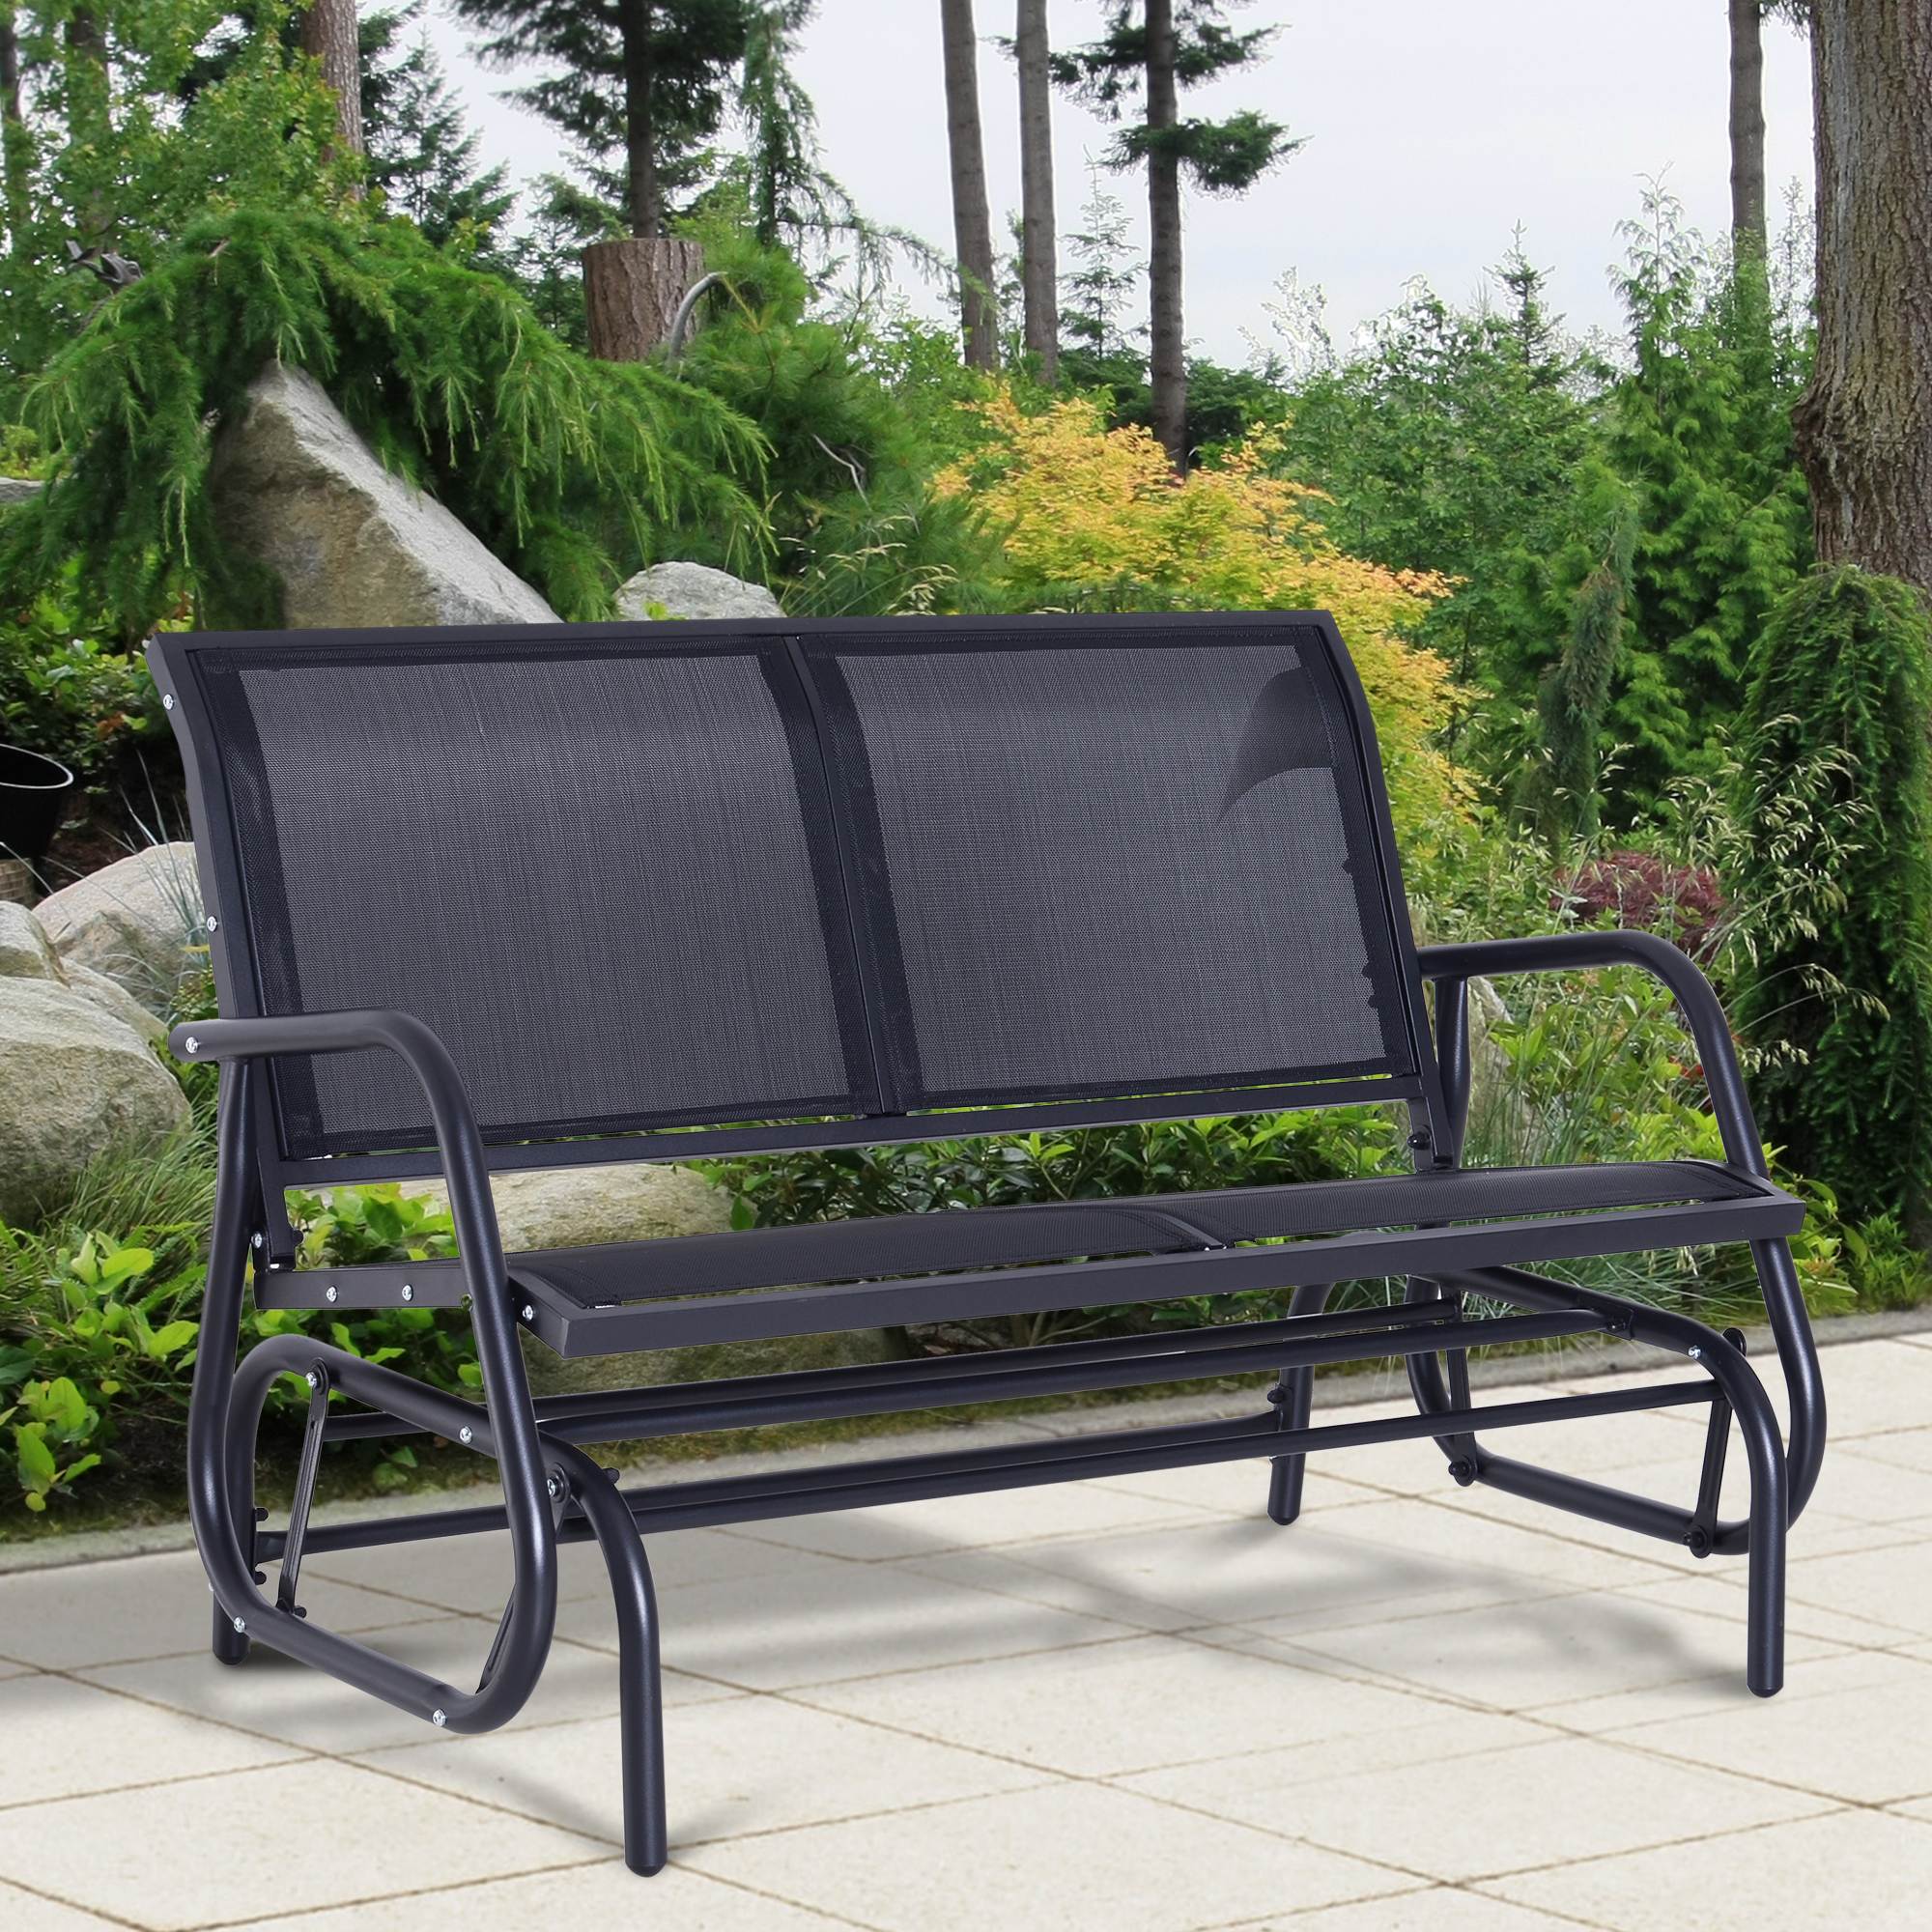 Details About Outsunny Patio Garden Glider Bench 2 Person Double Swing Chair Rocker Deck Black Regarding 1 Person Antique Black Steel Outdoor Gliders (View 7 of 25)